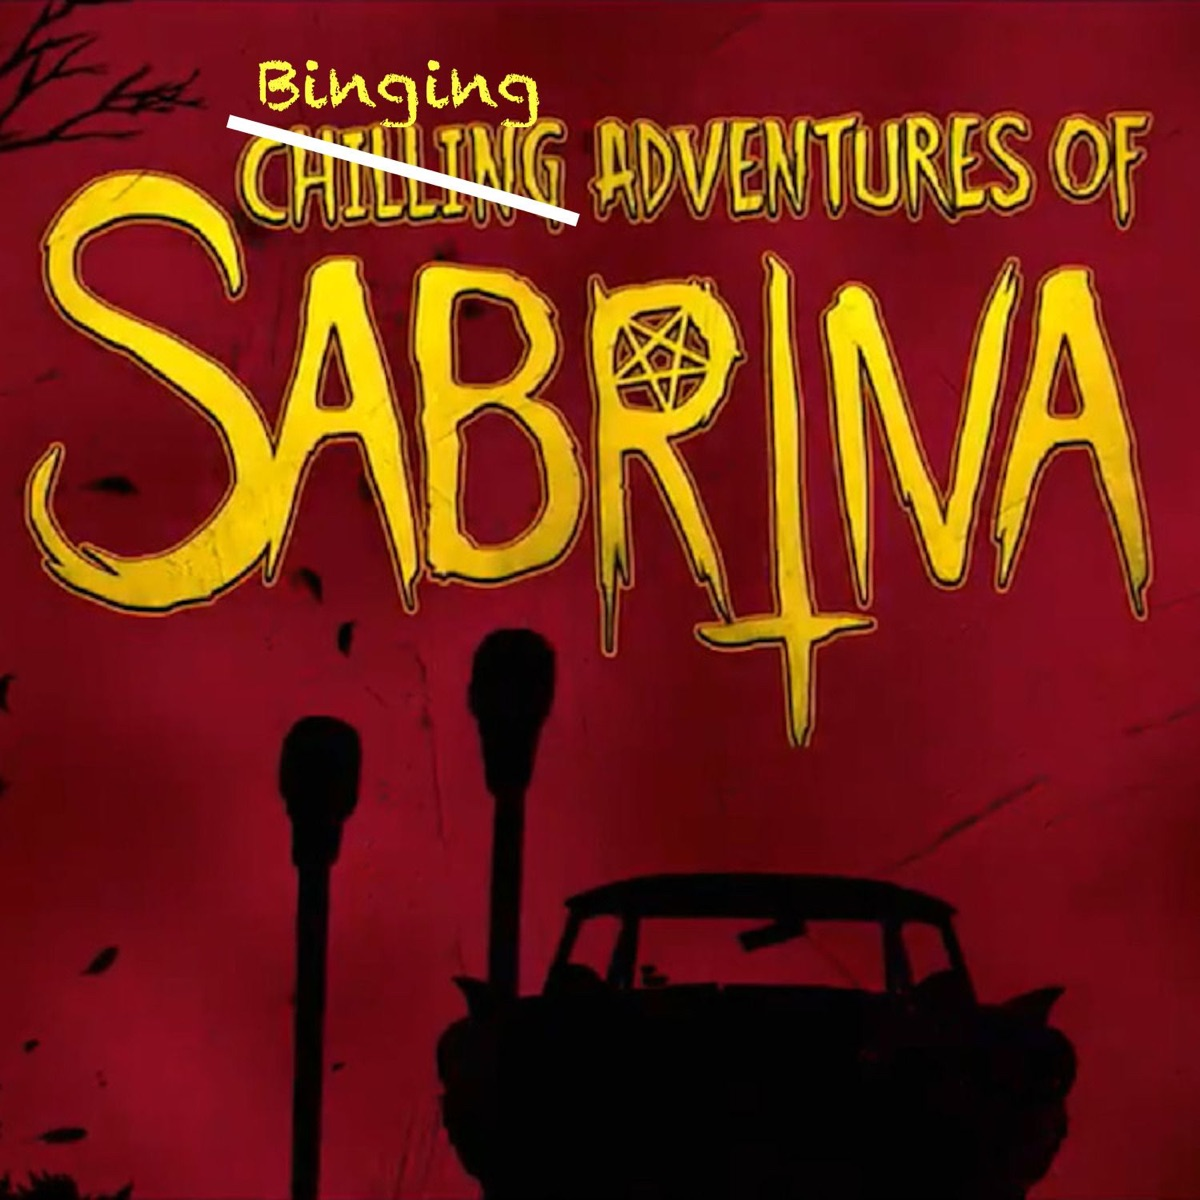 The Binging Adventures of Sabrina